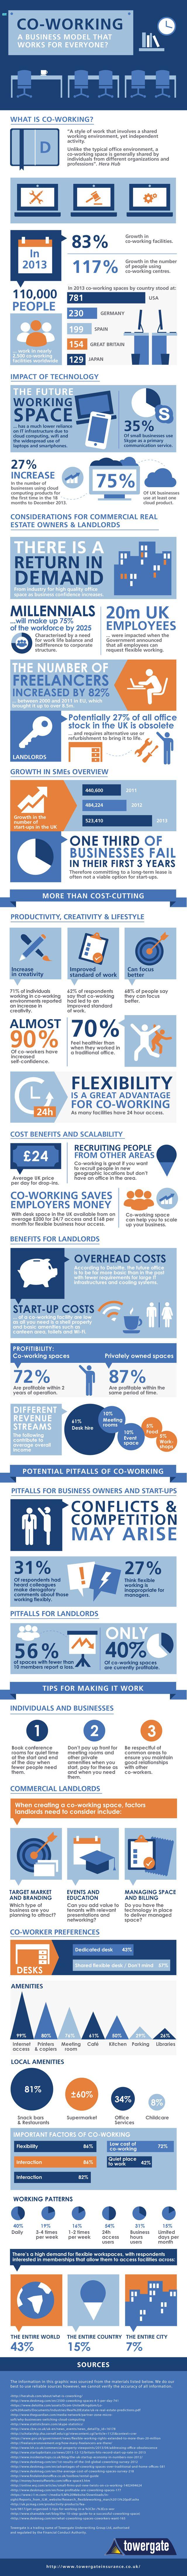 A great coworking Infographic by Tower Gate Insurance in the UK. Nice work!